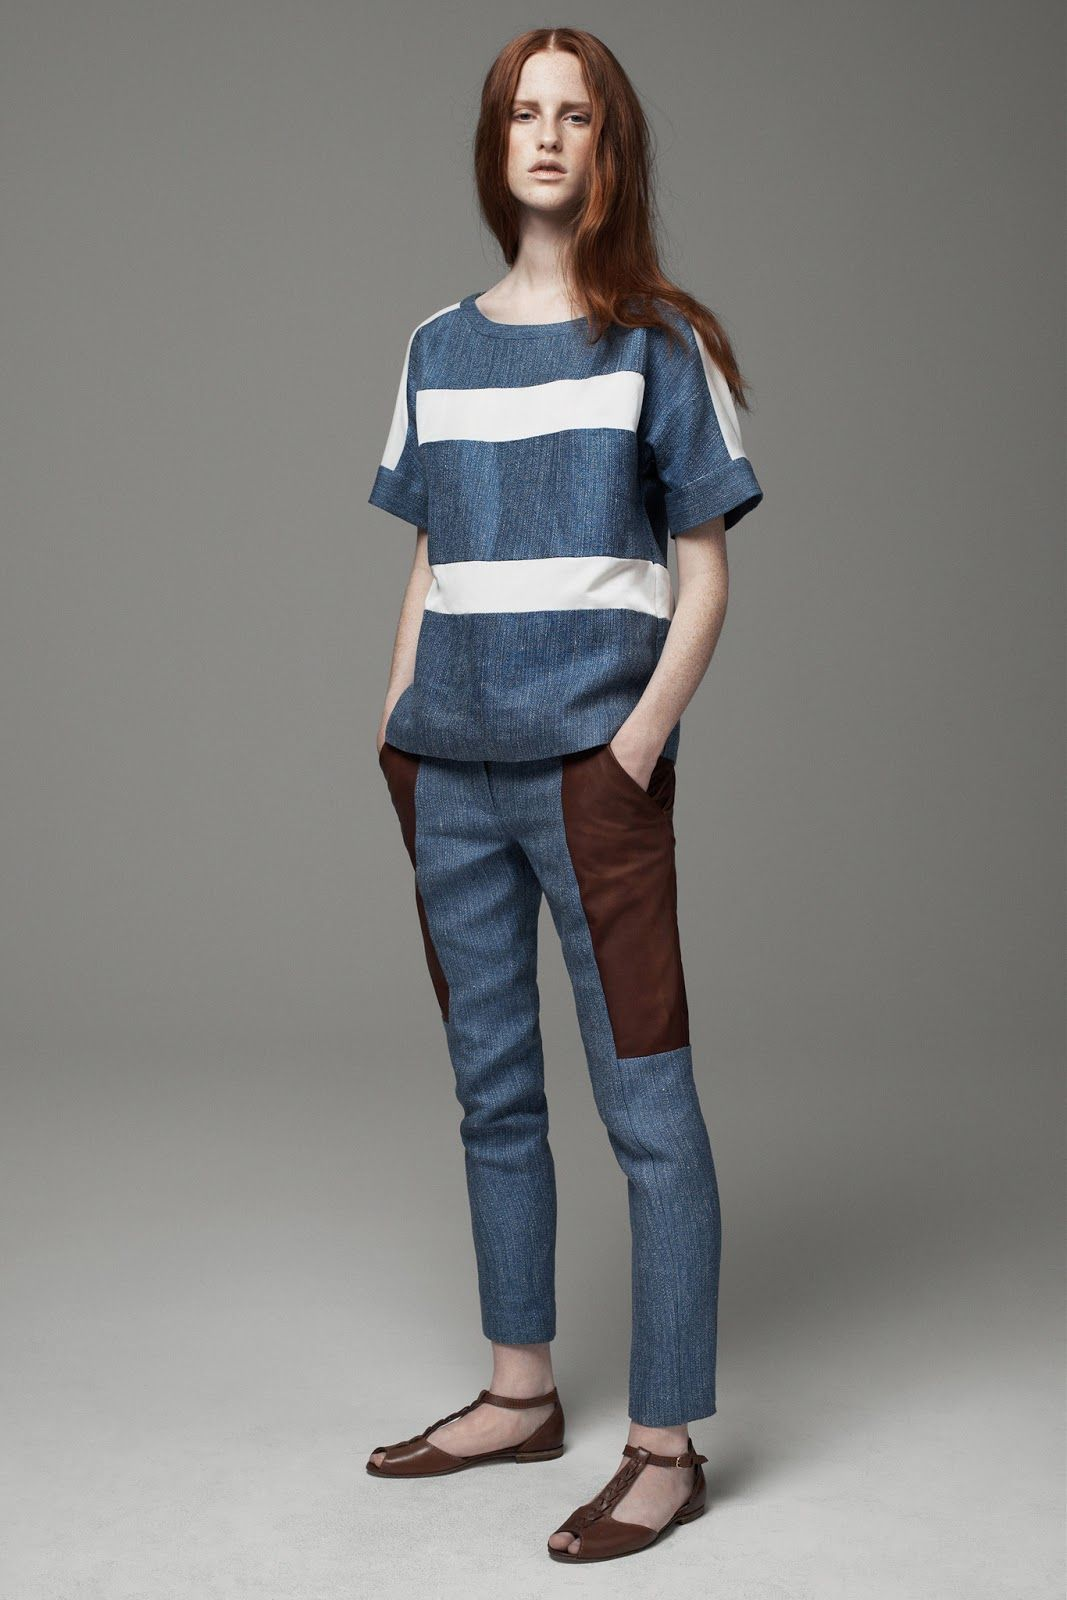 MAGDALENA JASEK FOR THAKOON ADDITION PRE-FALL 2013